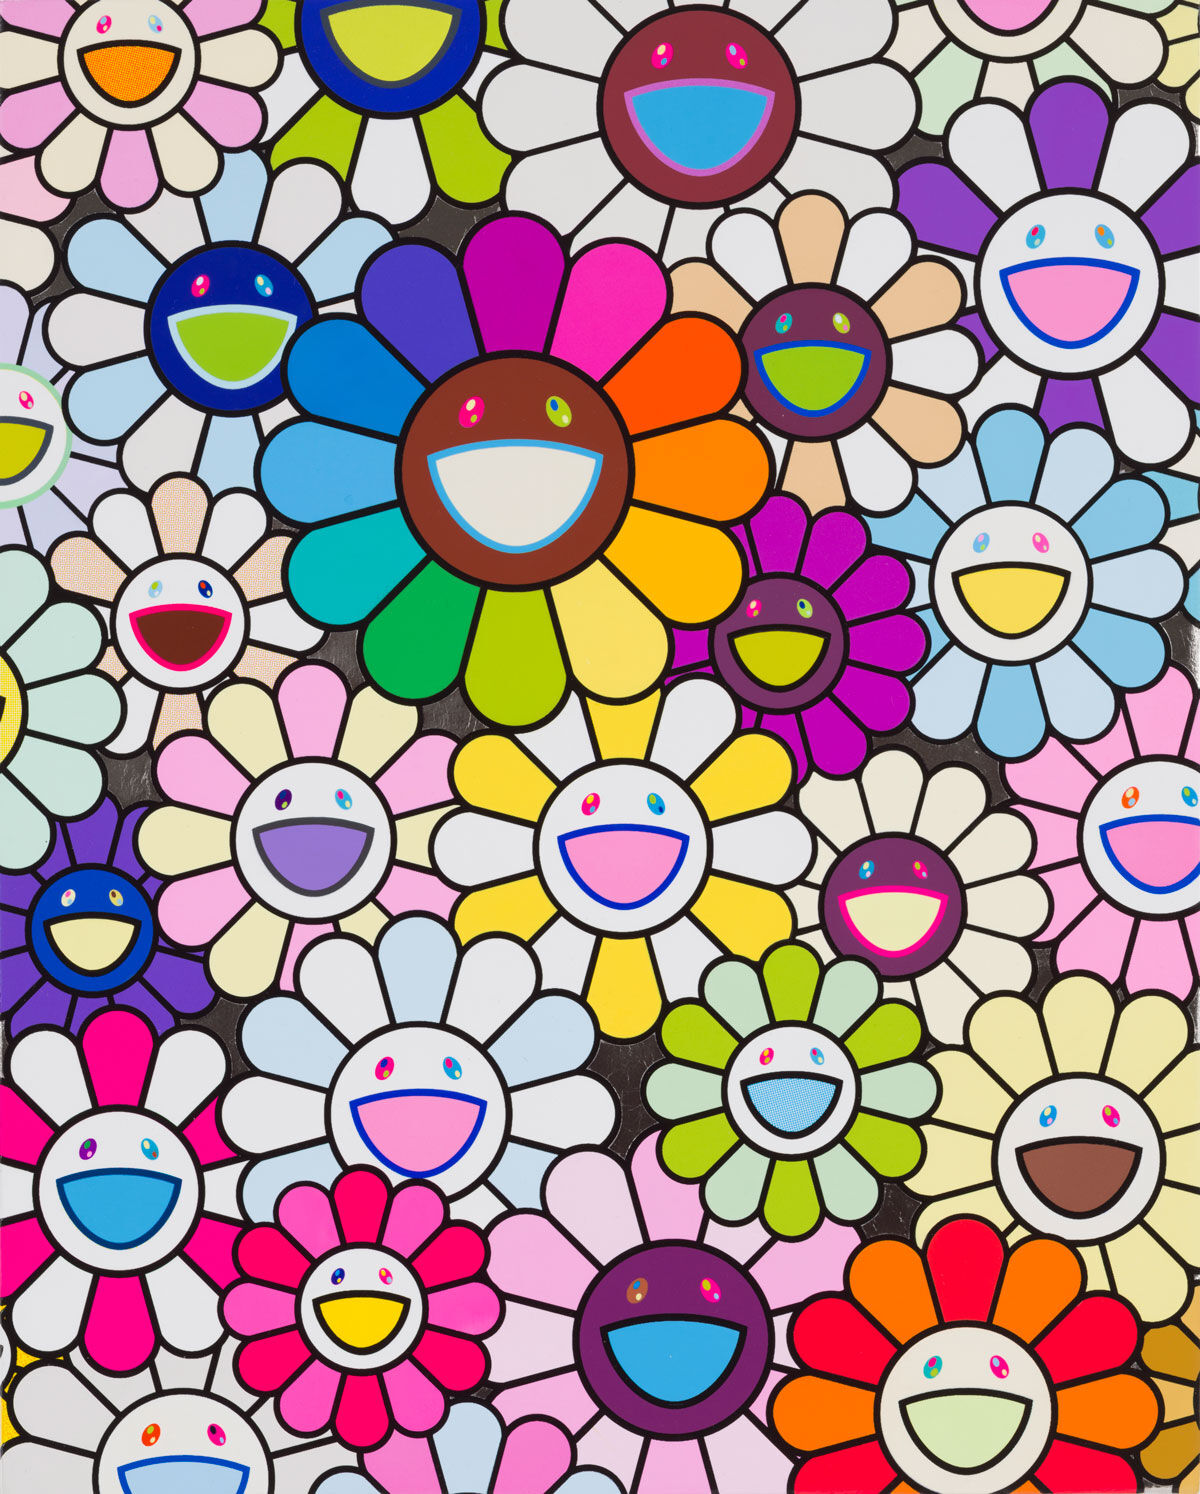 Takashi Murakami, Field of Flowers, 2019. ©︎  Takashi Murakami/Kaikai Kiki Co., Ltd. All Rights Reserved. Courtesy of Gagosian.